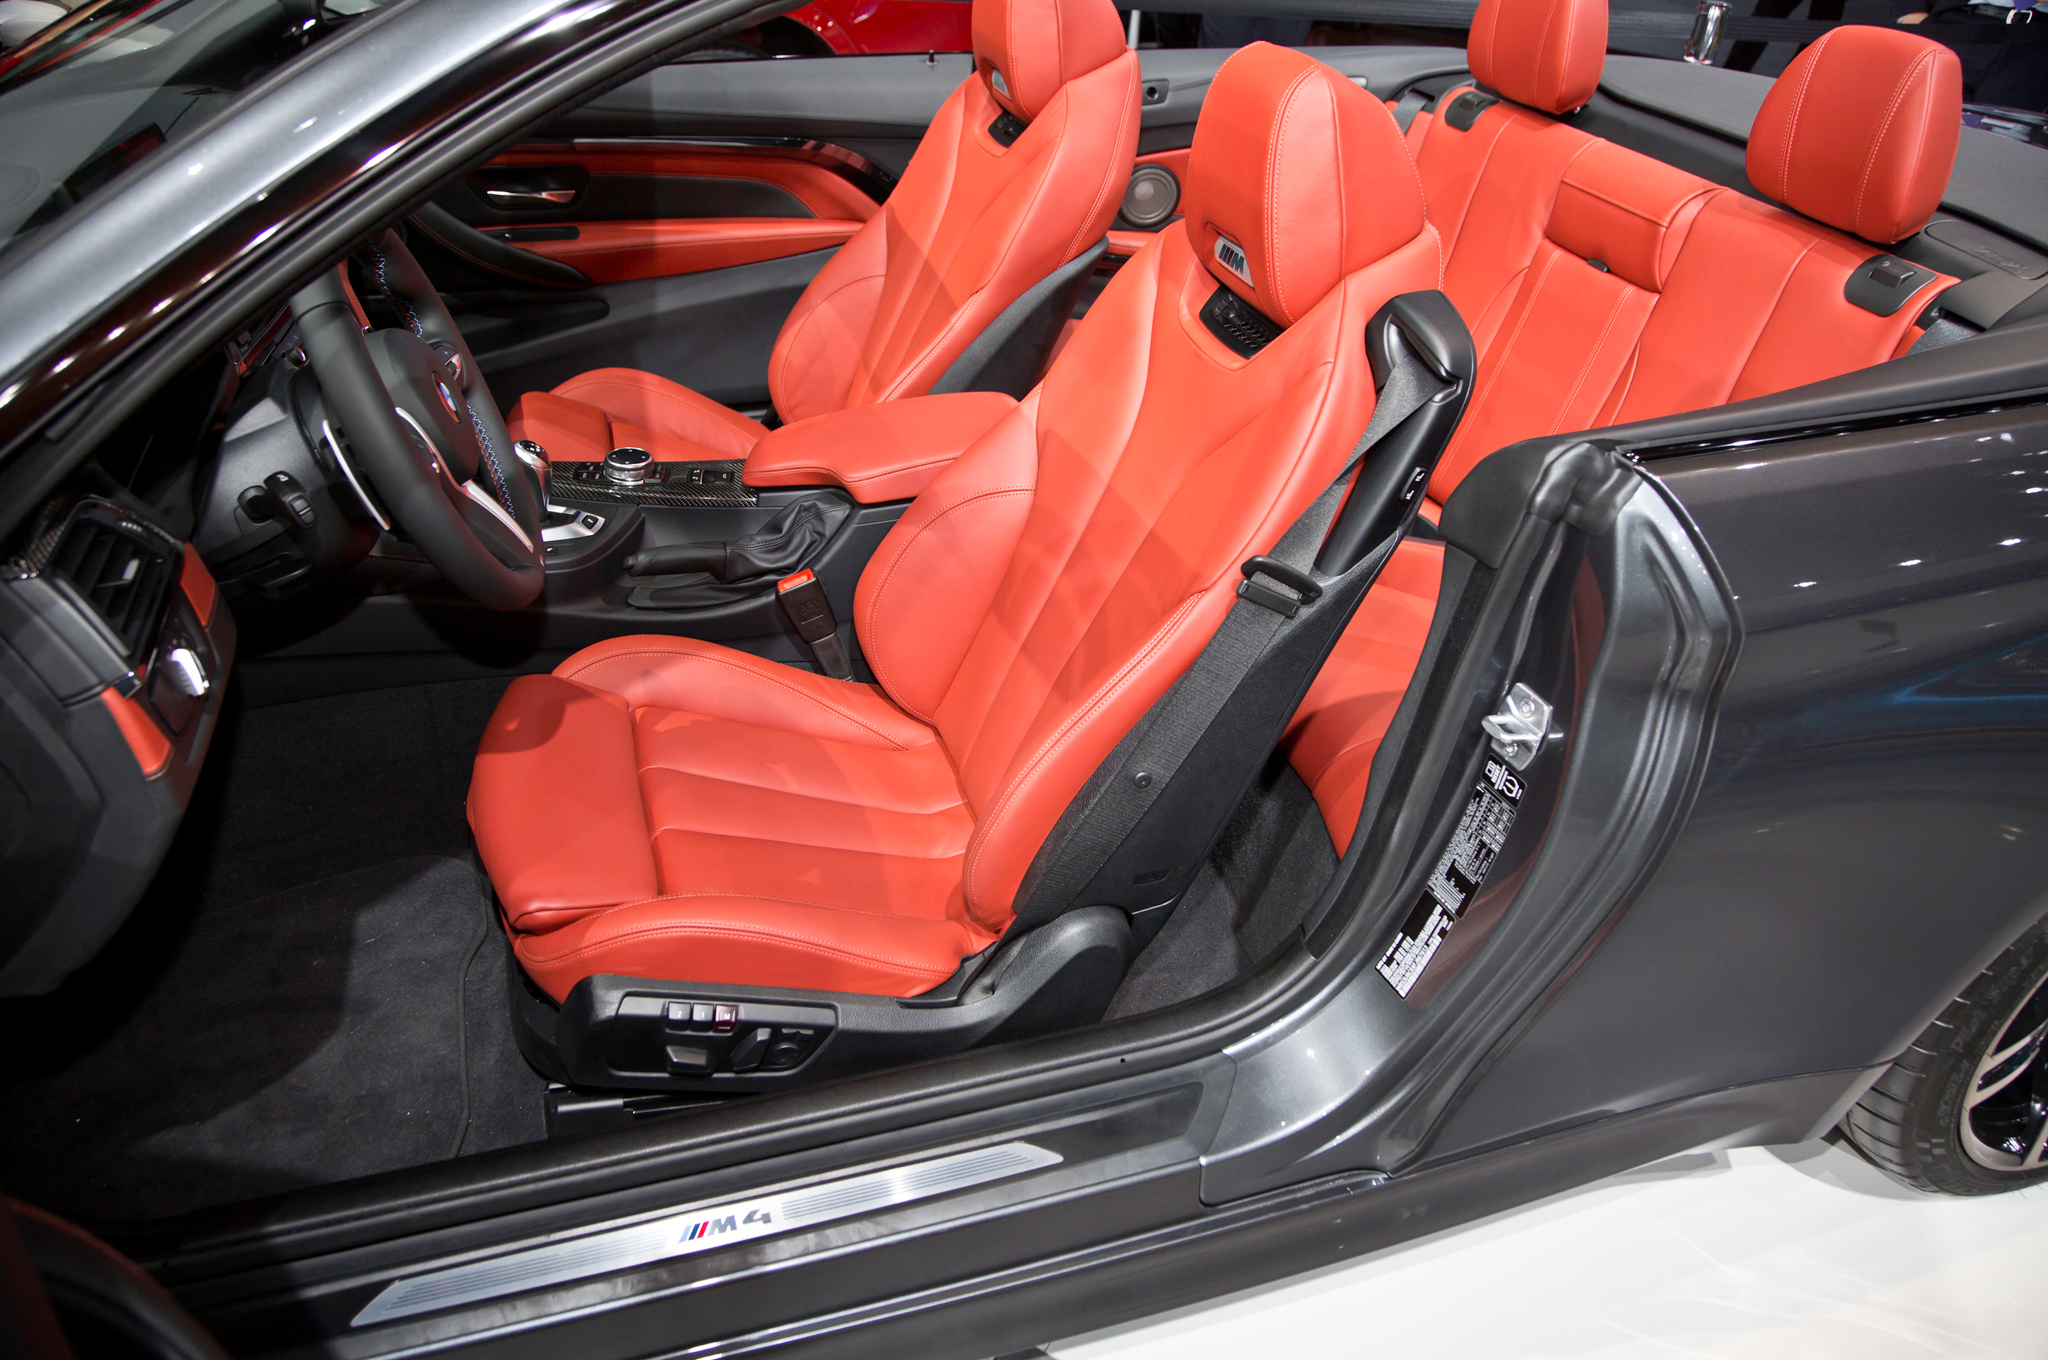 2015 Bmw M4 Convertible Interior Seats (View 11 of 50)